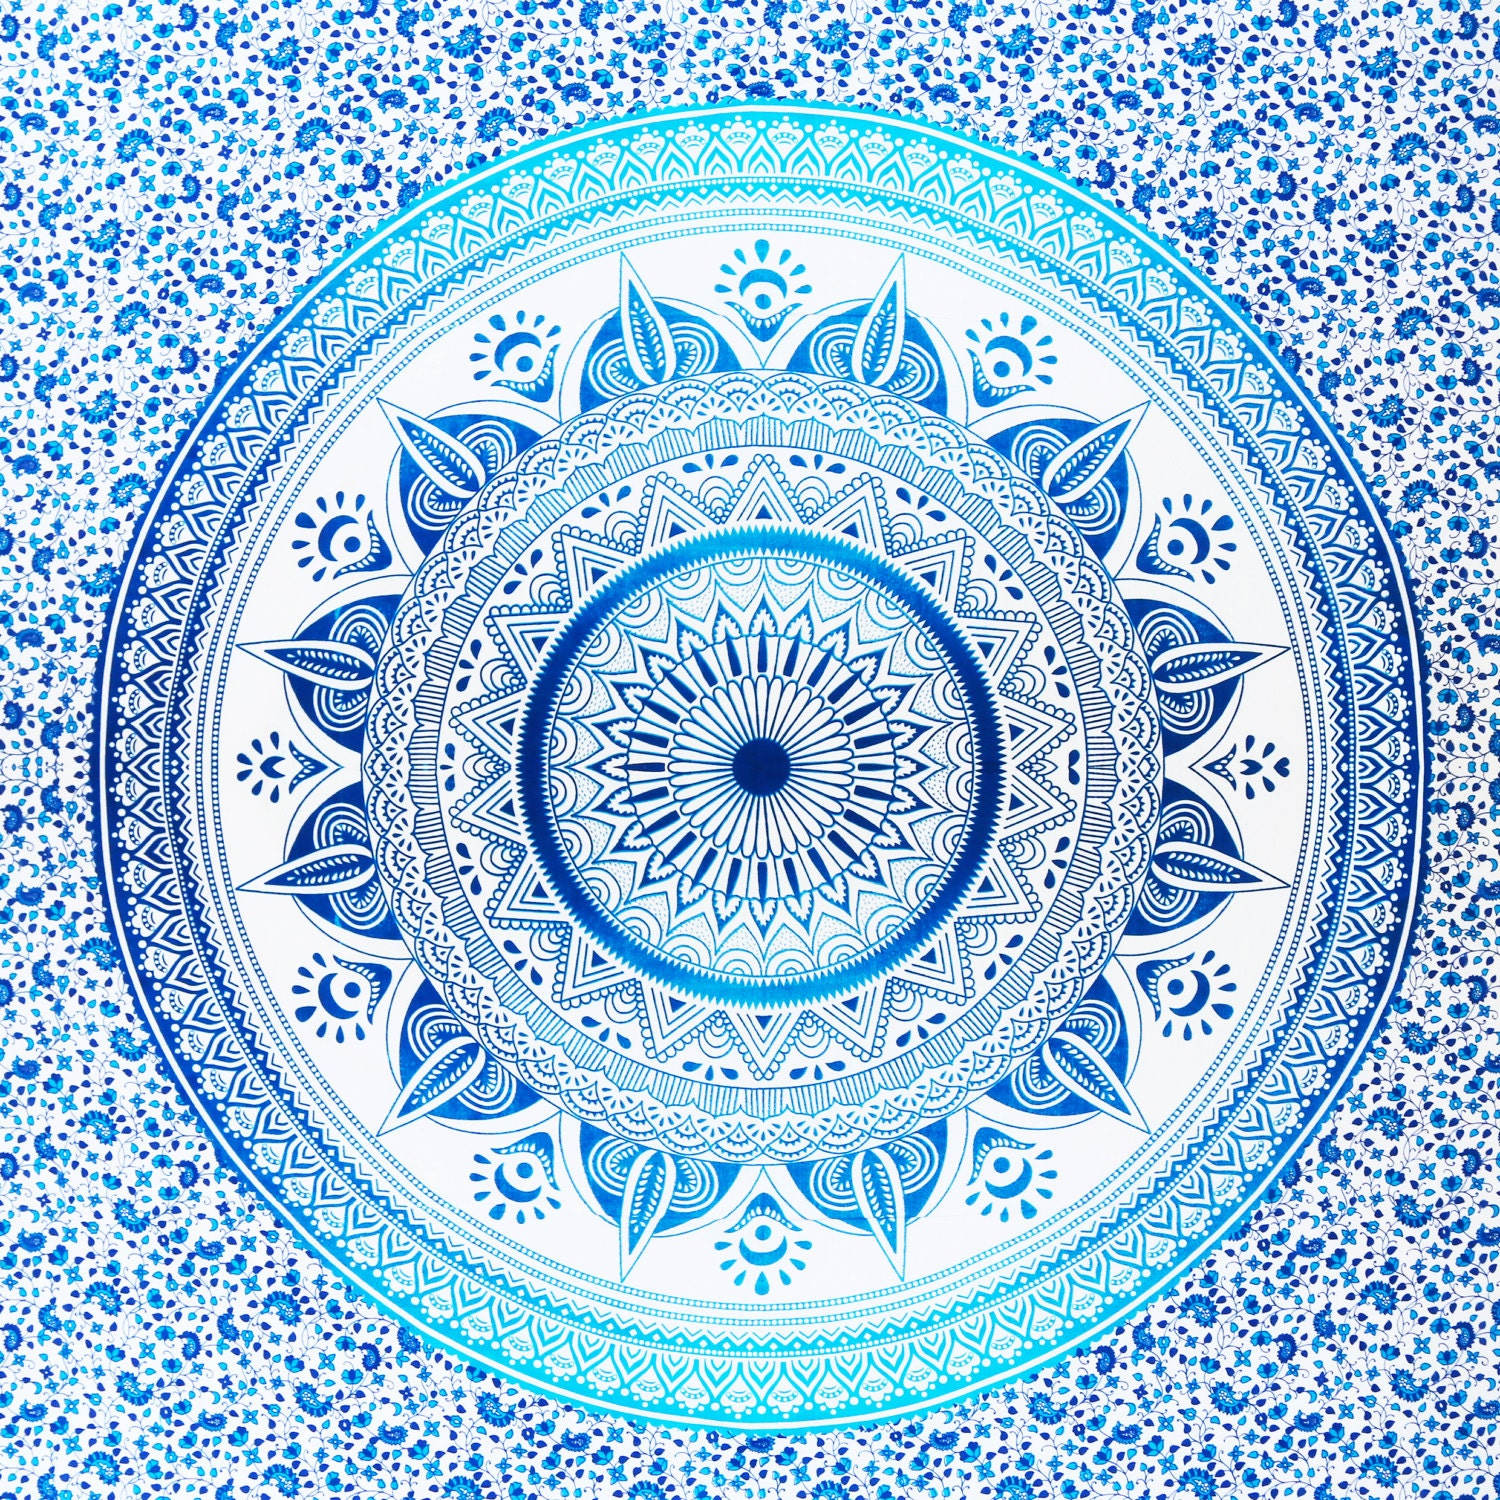 Mandala Tapestry Throw Bedspread Blue Patterned by TIPSYMOON